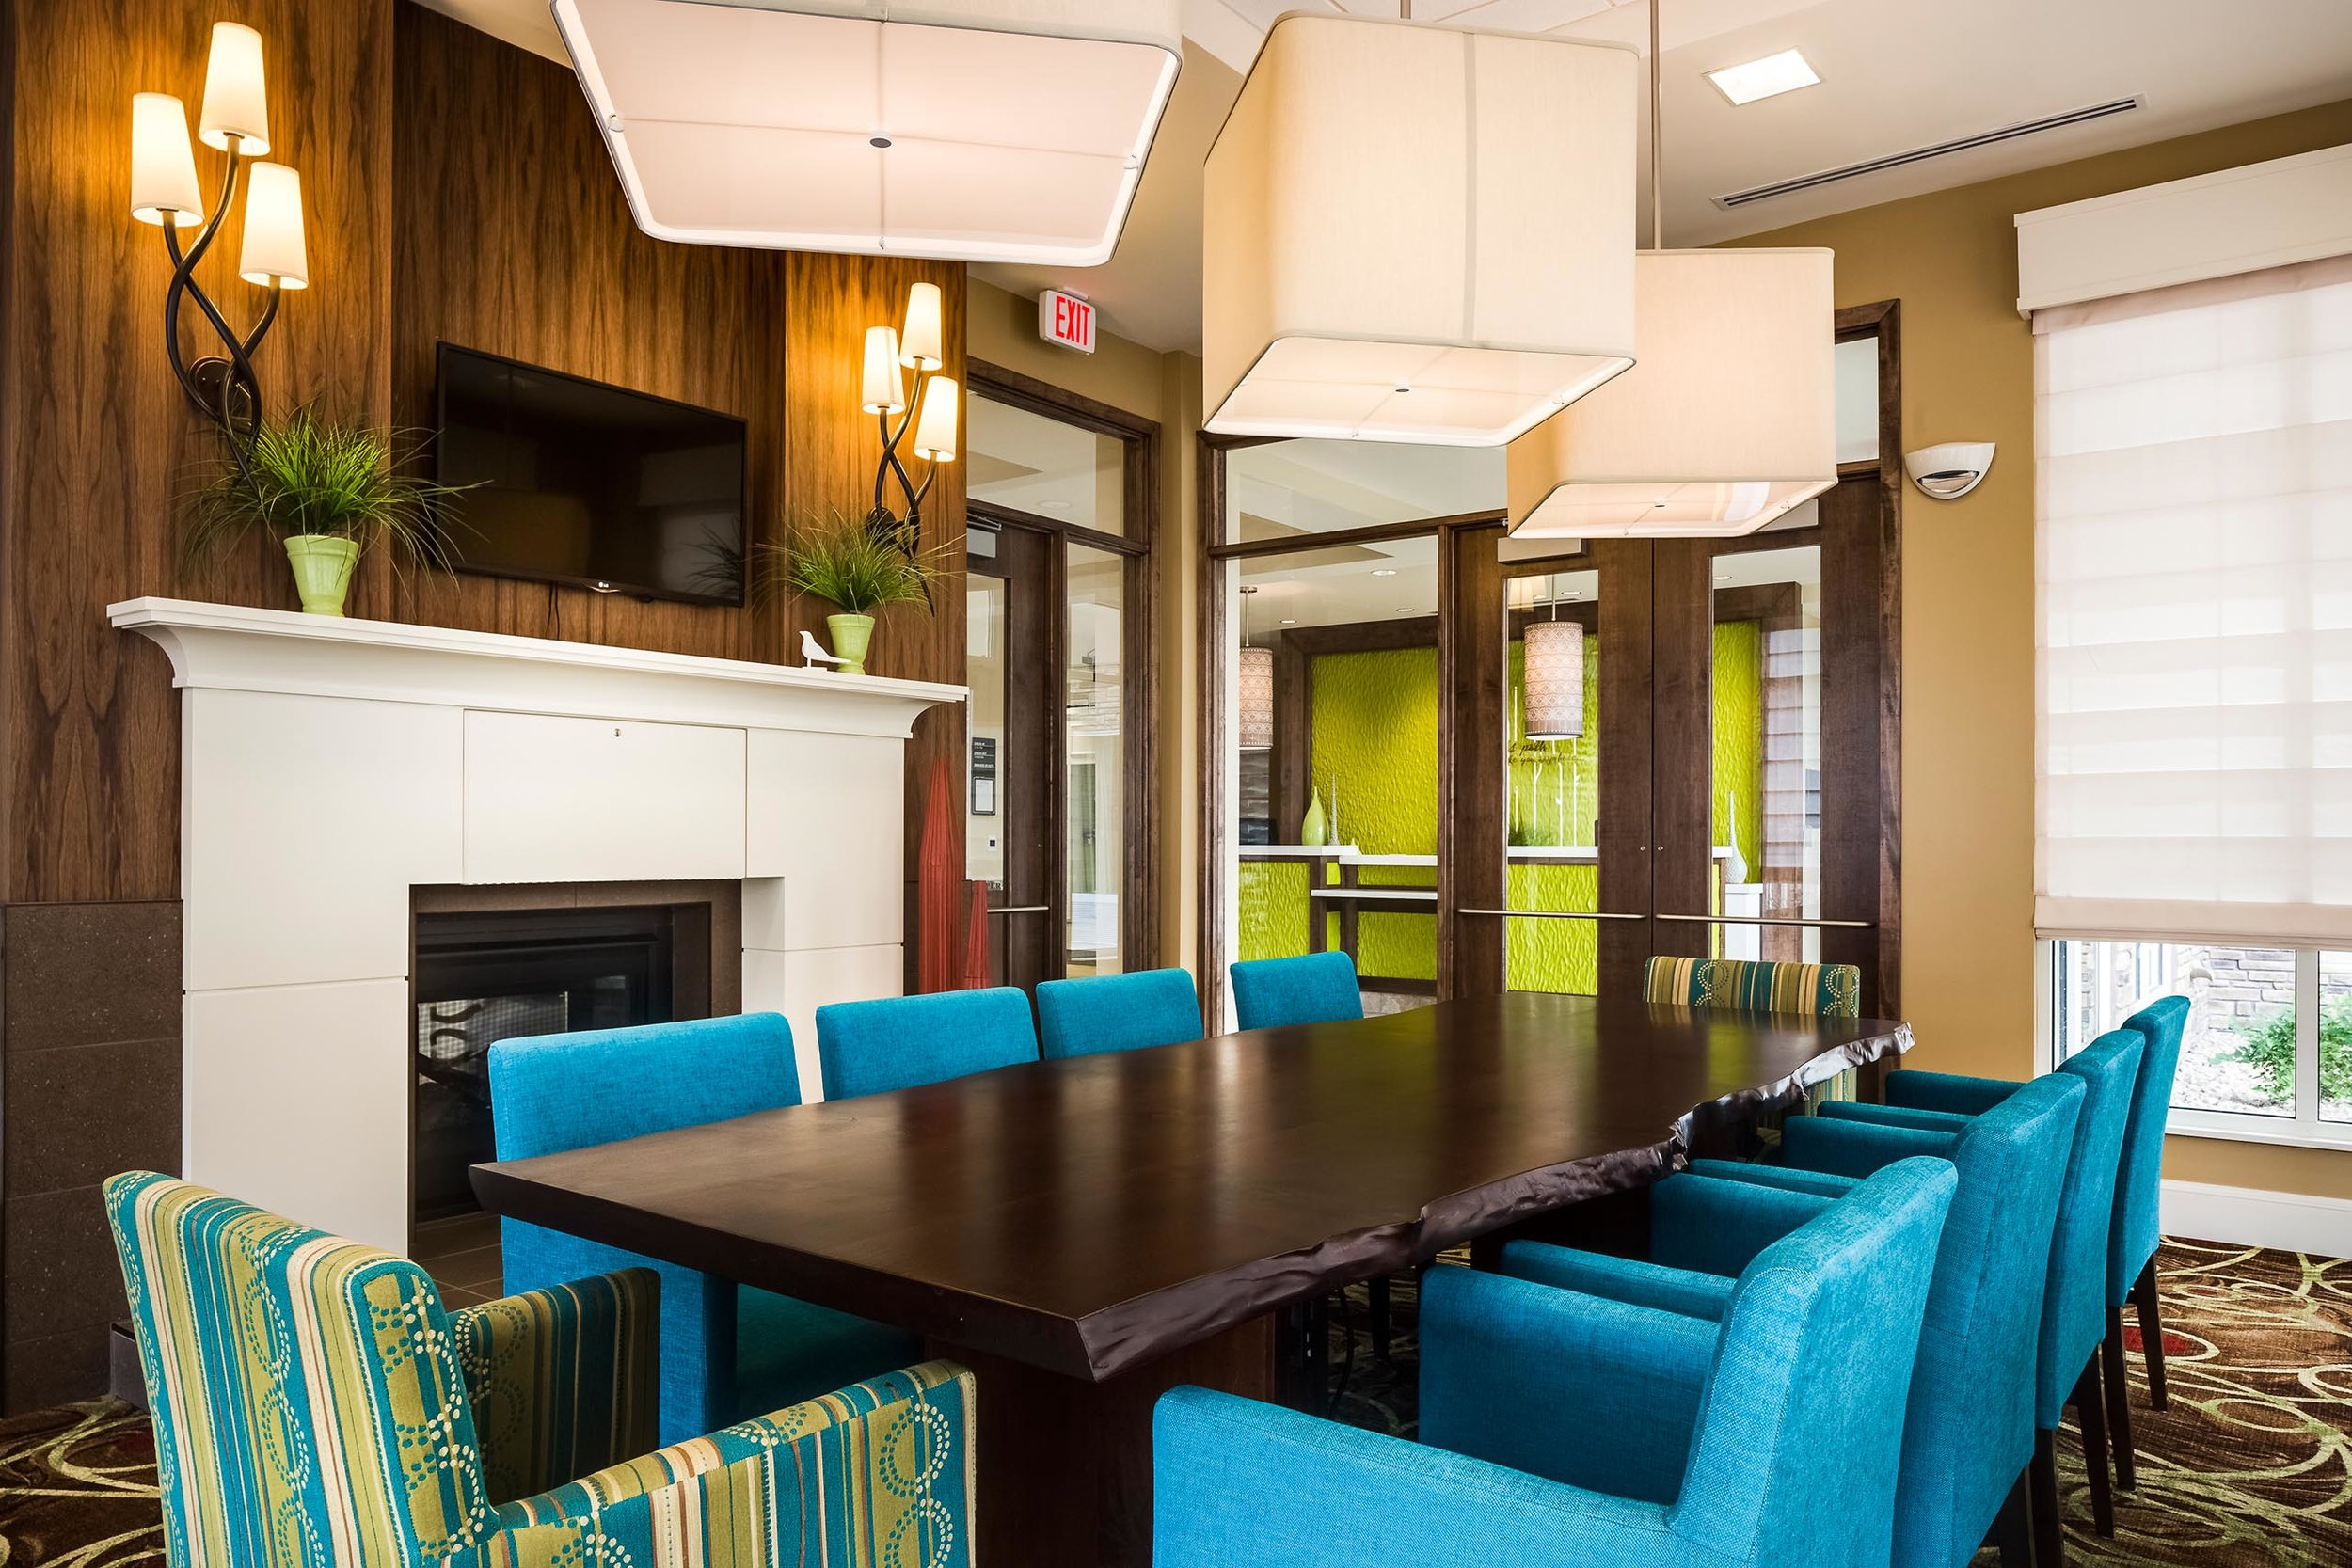 Seating area at the Hilton Garden Inn in Bettendorf, IA